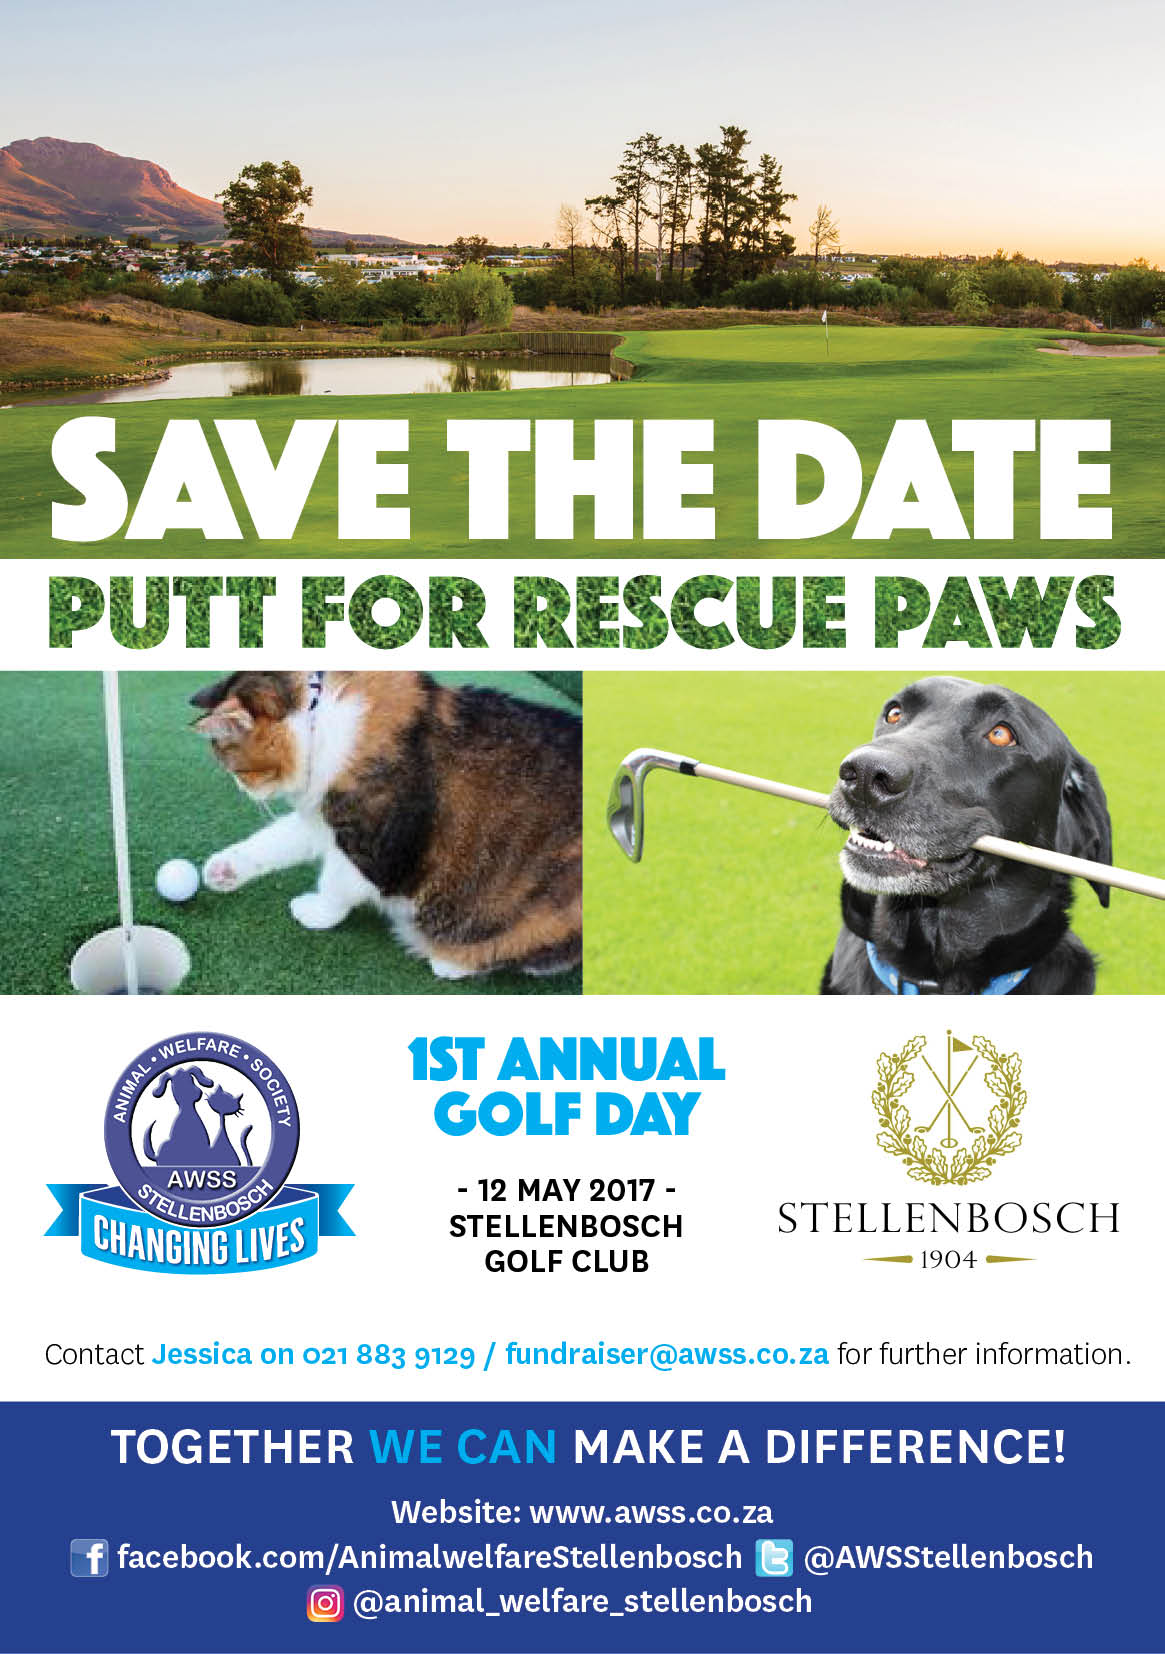 Putt for Rescue Paws